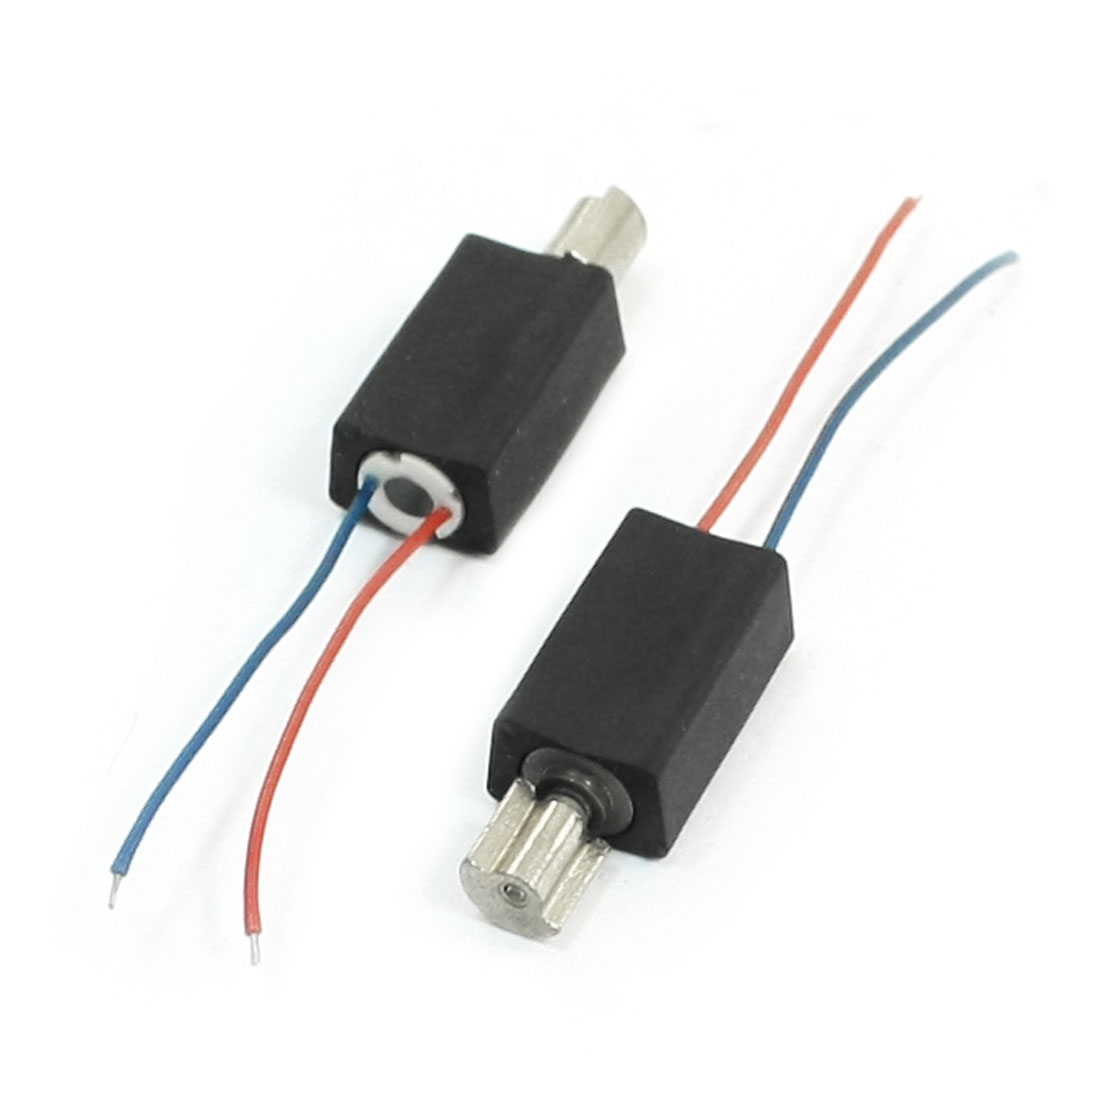 2PCS-RC-Car-Toy-Coreless-Vibrating-Motor-Two-Wire-Connection-DC3V-1000RPM